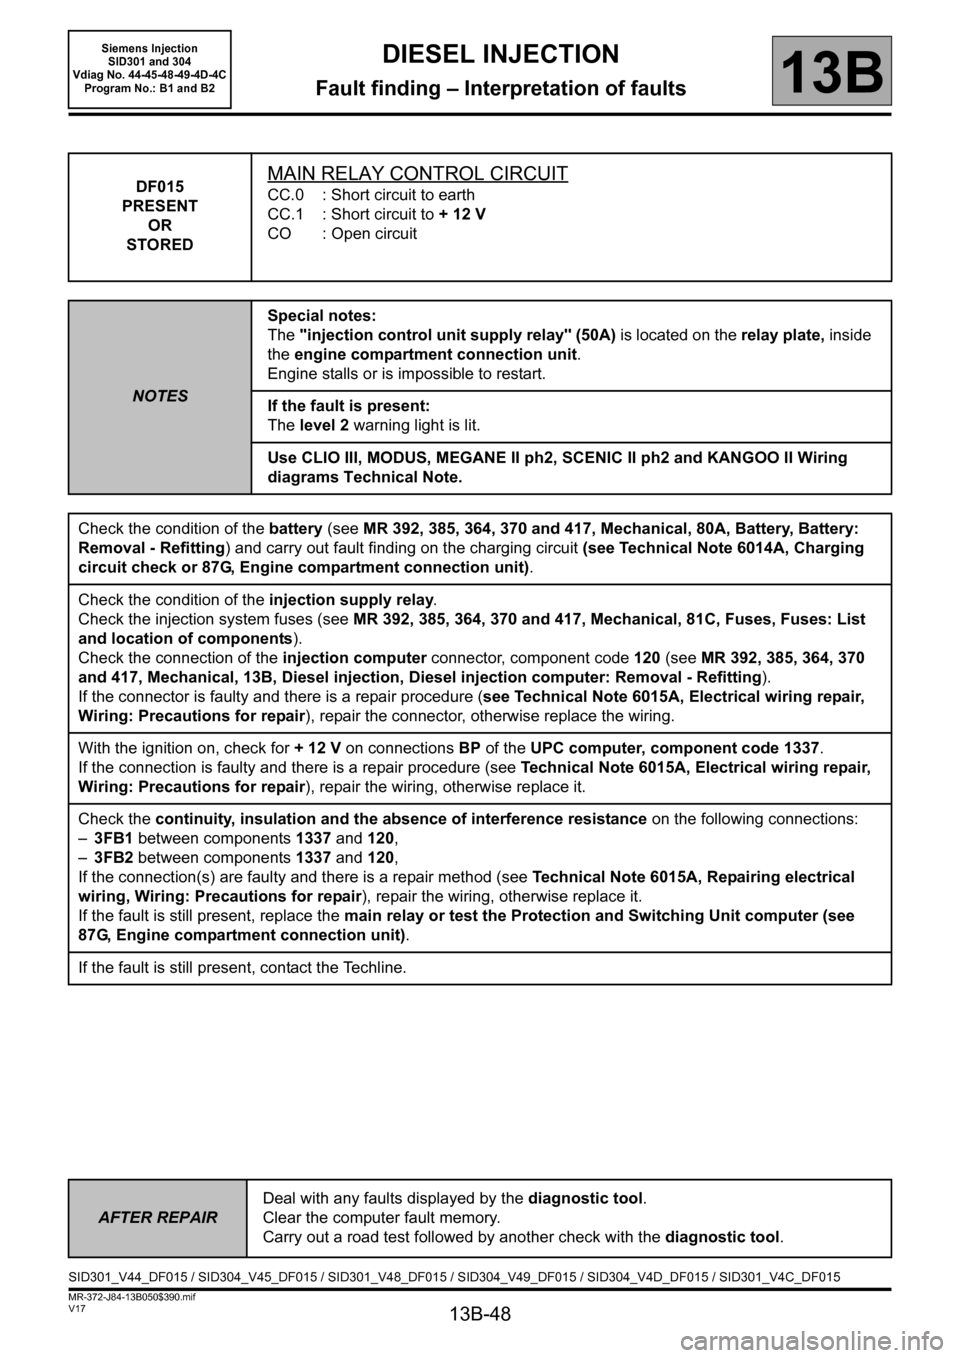 RENAULT SCENIC 2011 J95 / 3.G Engine And Peripherals Siemens Injection Workshop Manual, Page 48